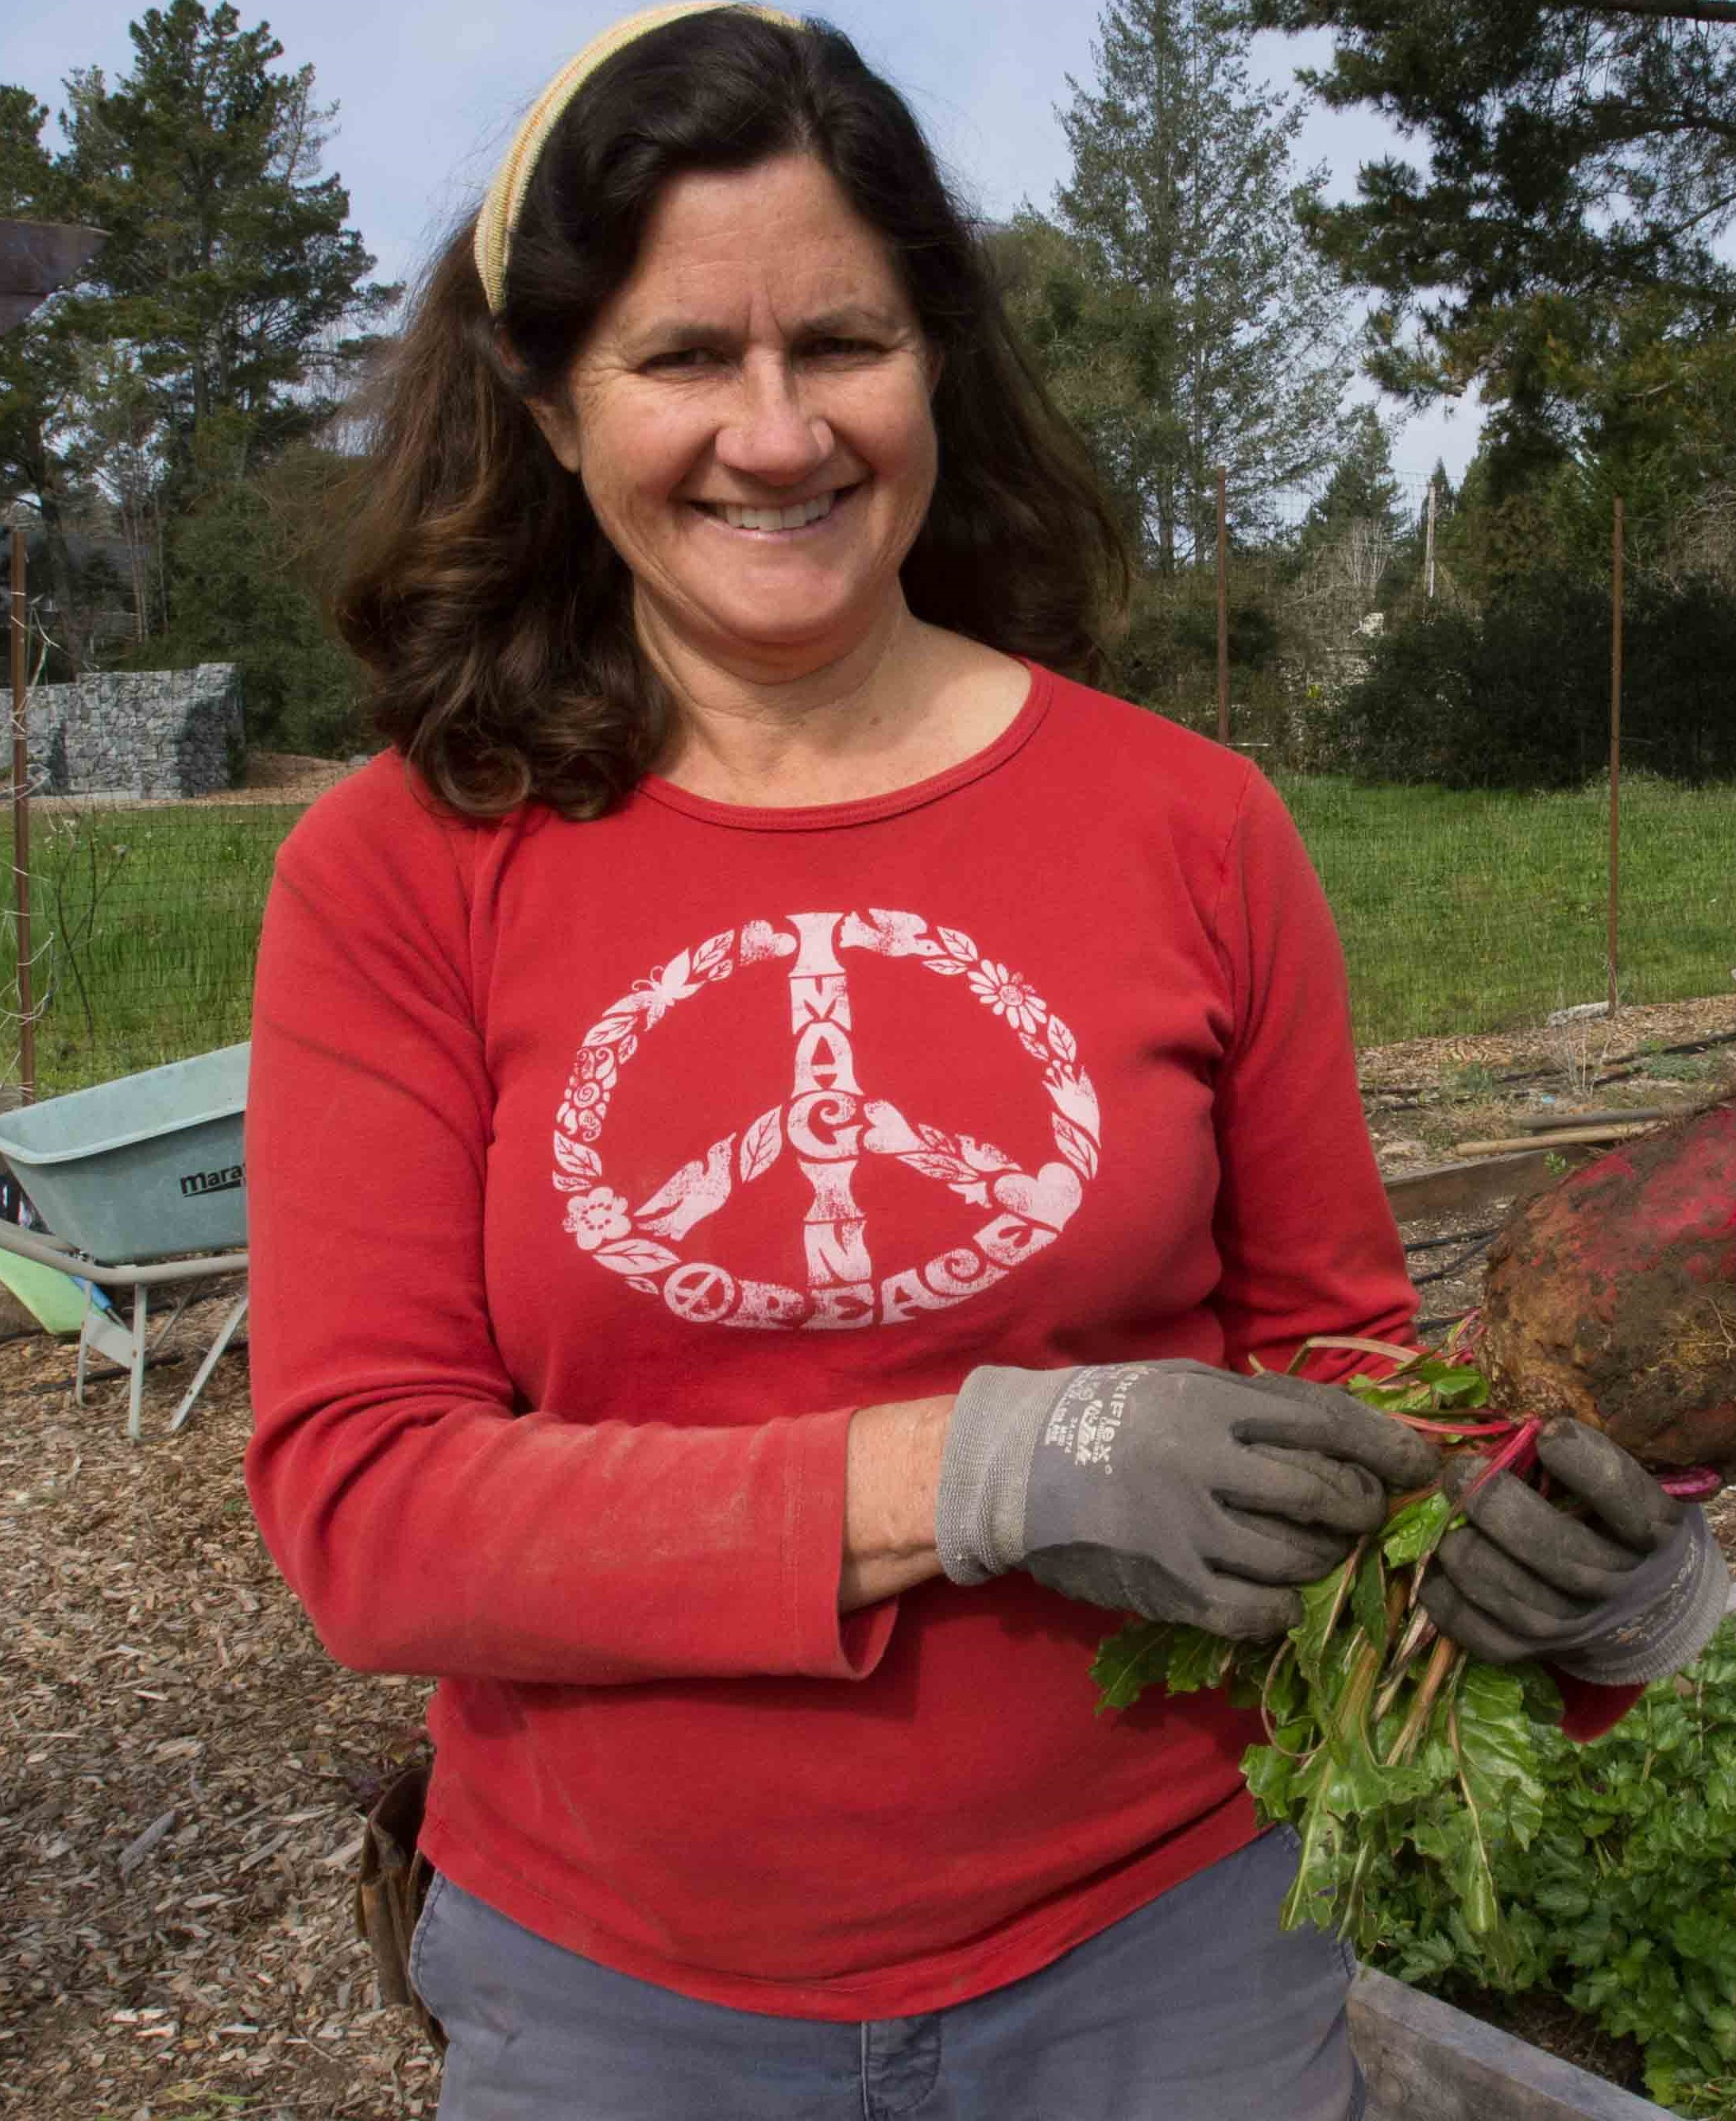 """Sara MCcamant has been a Seed Savers Exchange Member for Almost 25 years. """"I love how much Seed Savers Exchange cares for the story of the seed,"""" she says. """"The value placed on that is inspiring."""""""